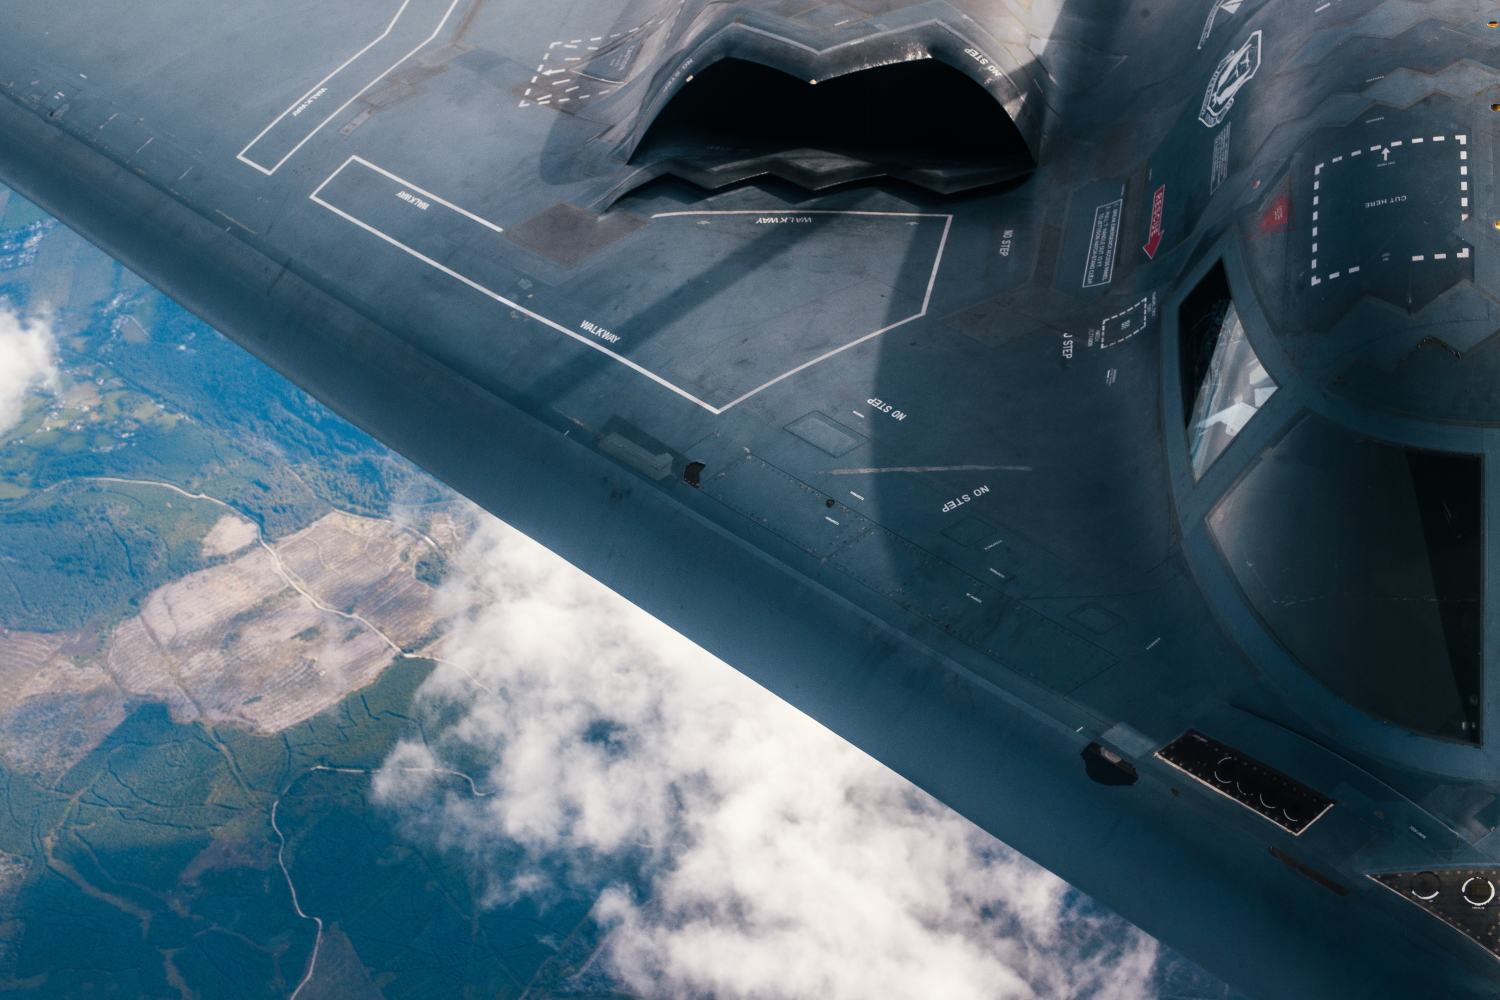 A 509th Bomb Wing B-2 Spirit refuels from a 351st Aerial Refueling Squadron KC-135 Stratotanker during the Bomber Task Force training exercise over the United Kingdom, Aug. 29, 2019. (Staff Sgt. Jordan Castelan/Air Force)